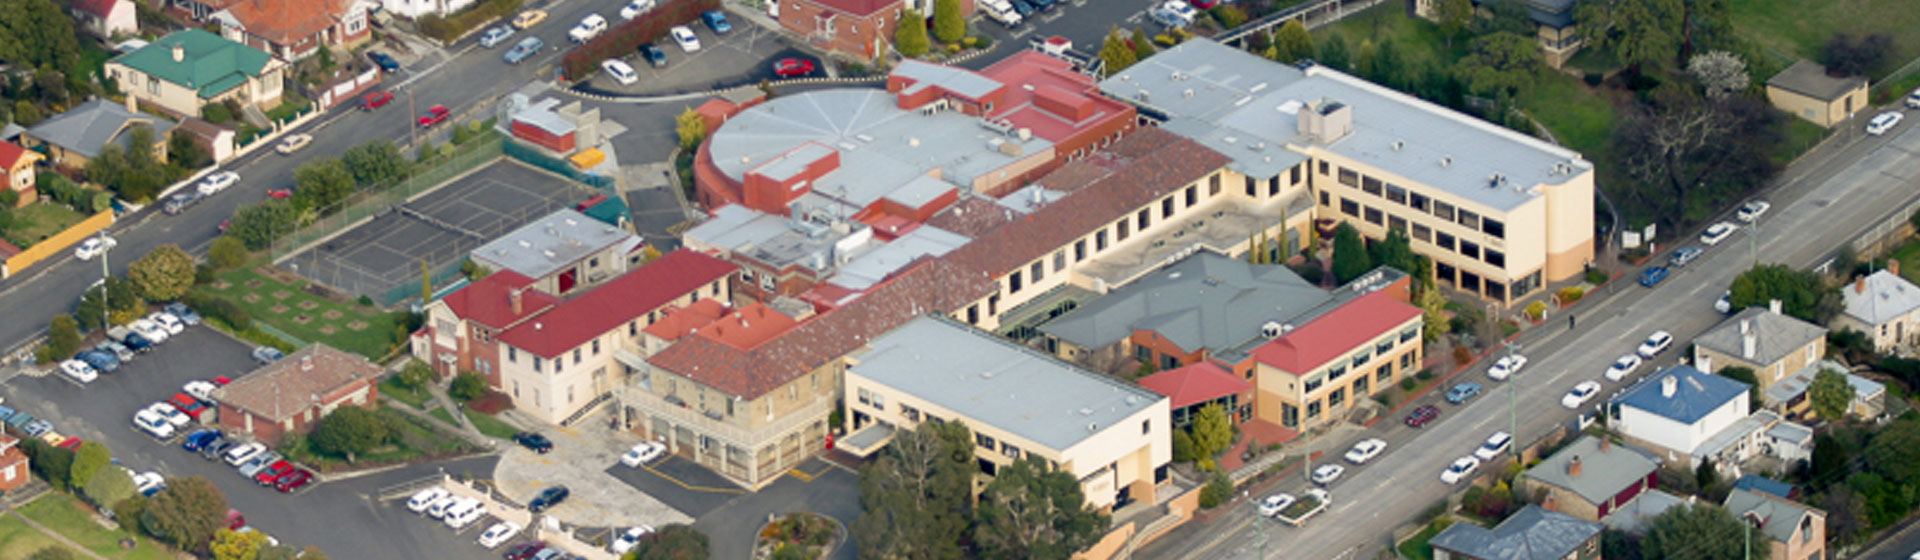 Aerial view of St John's Hospital